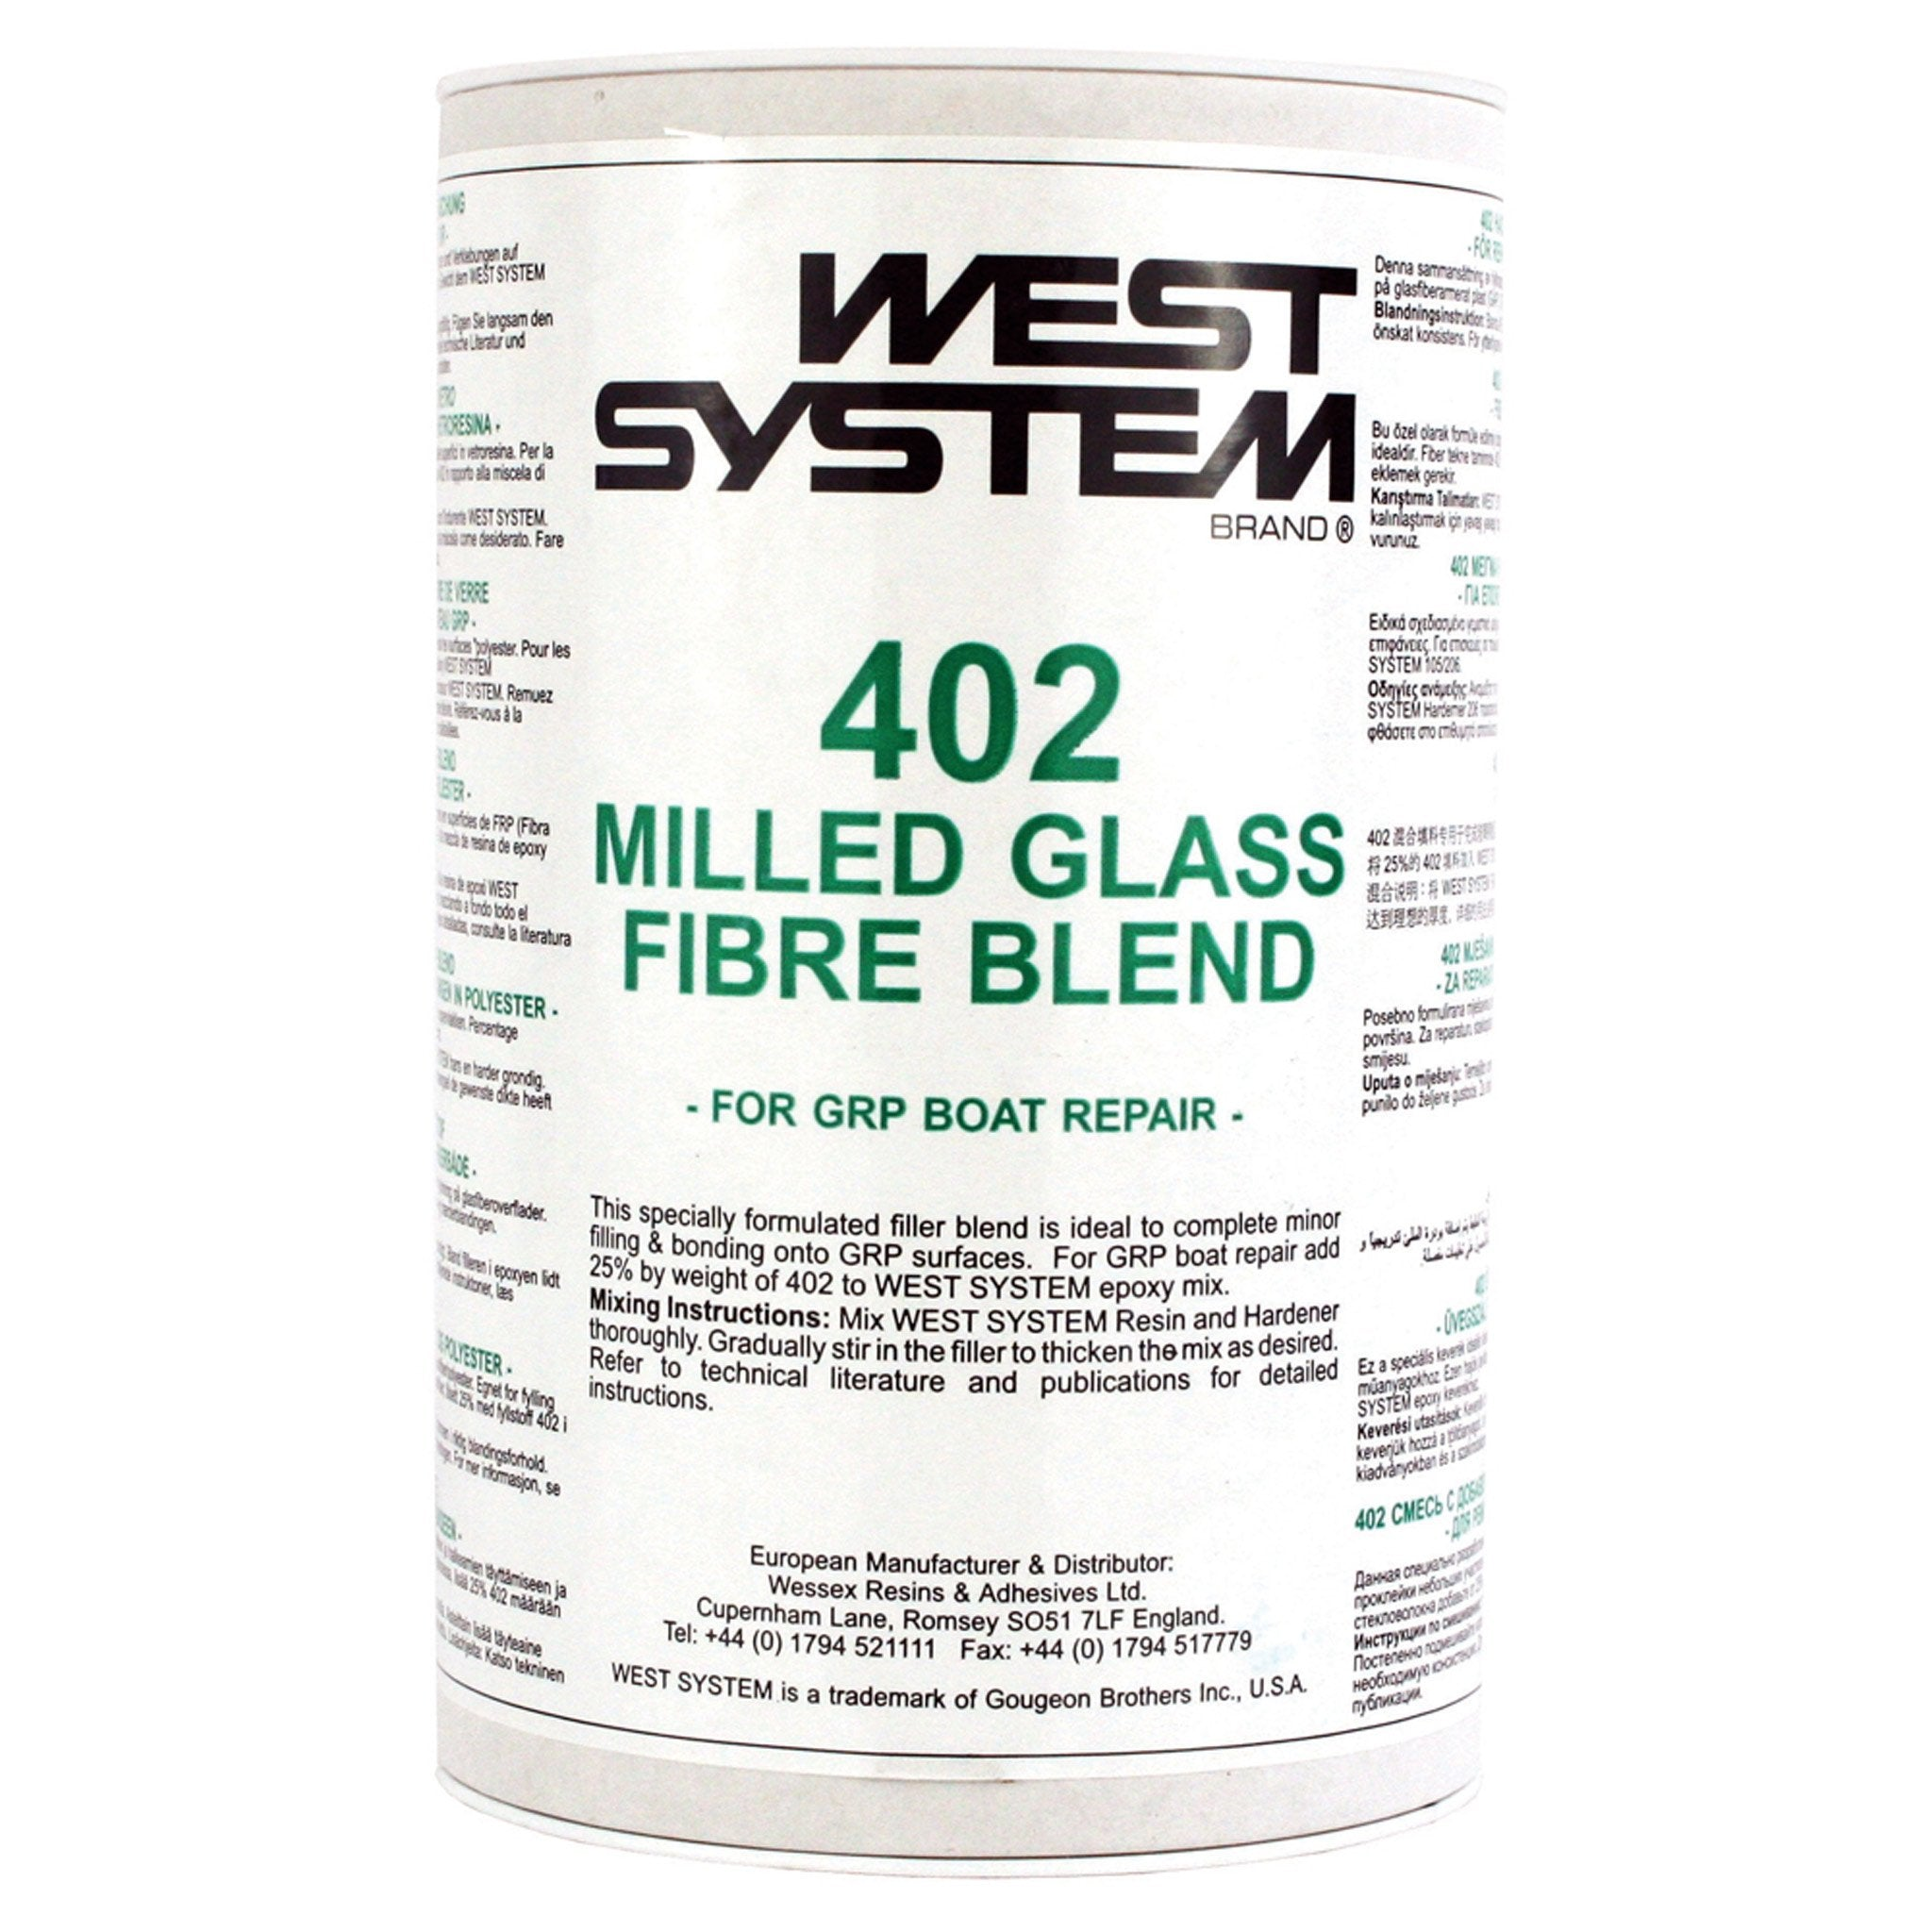 West System 402 Milled Glass Fibre Blend - Arthur Beale